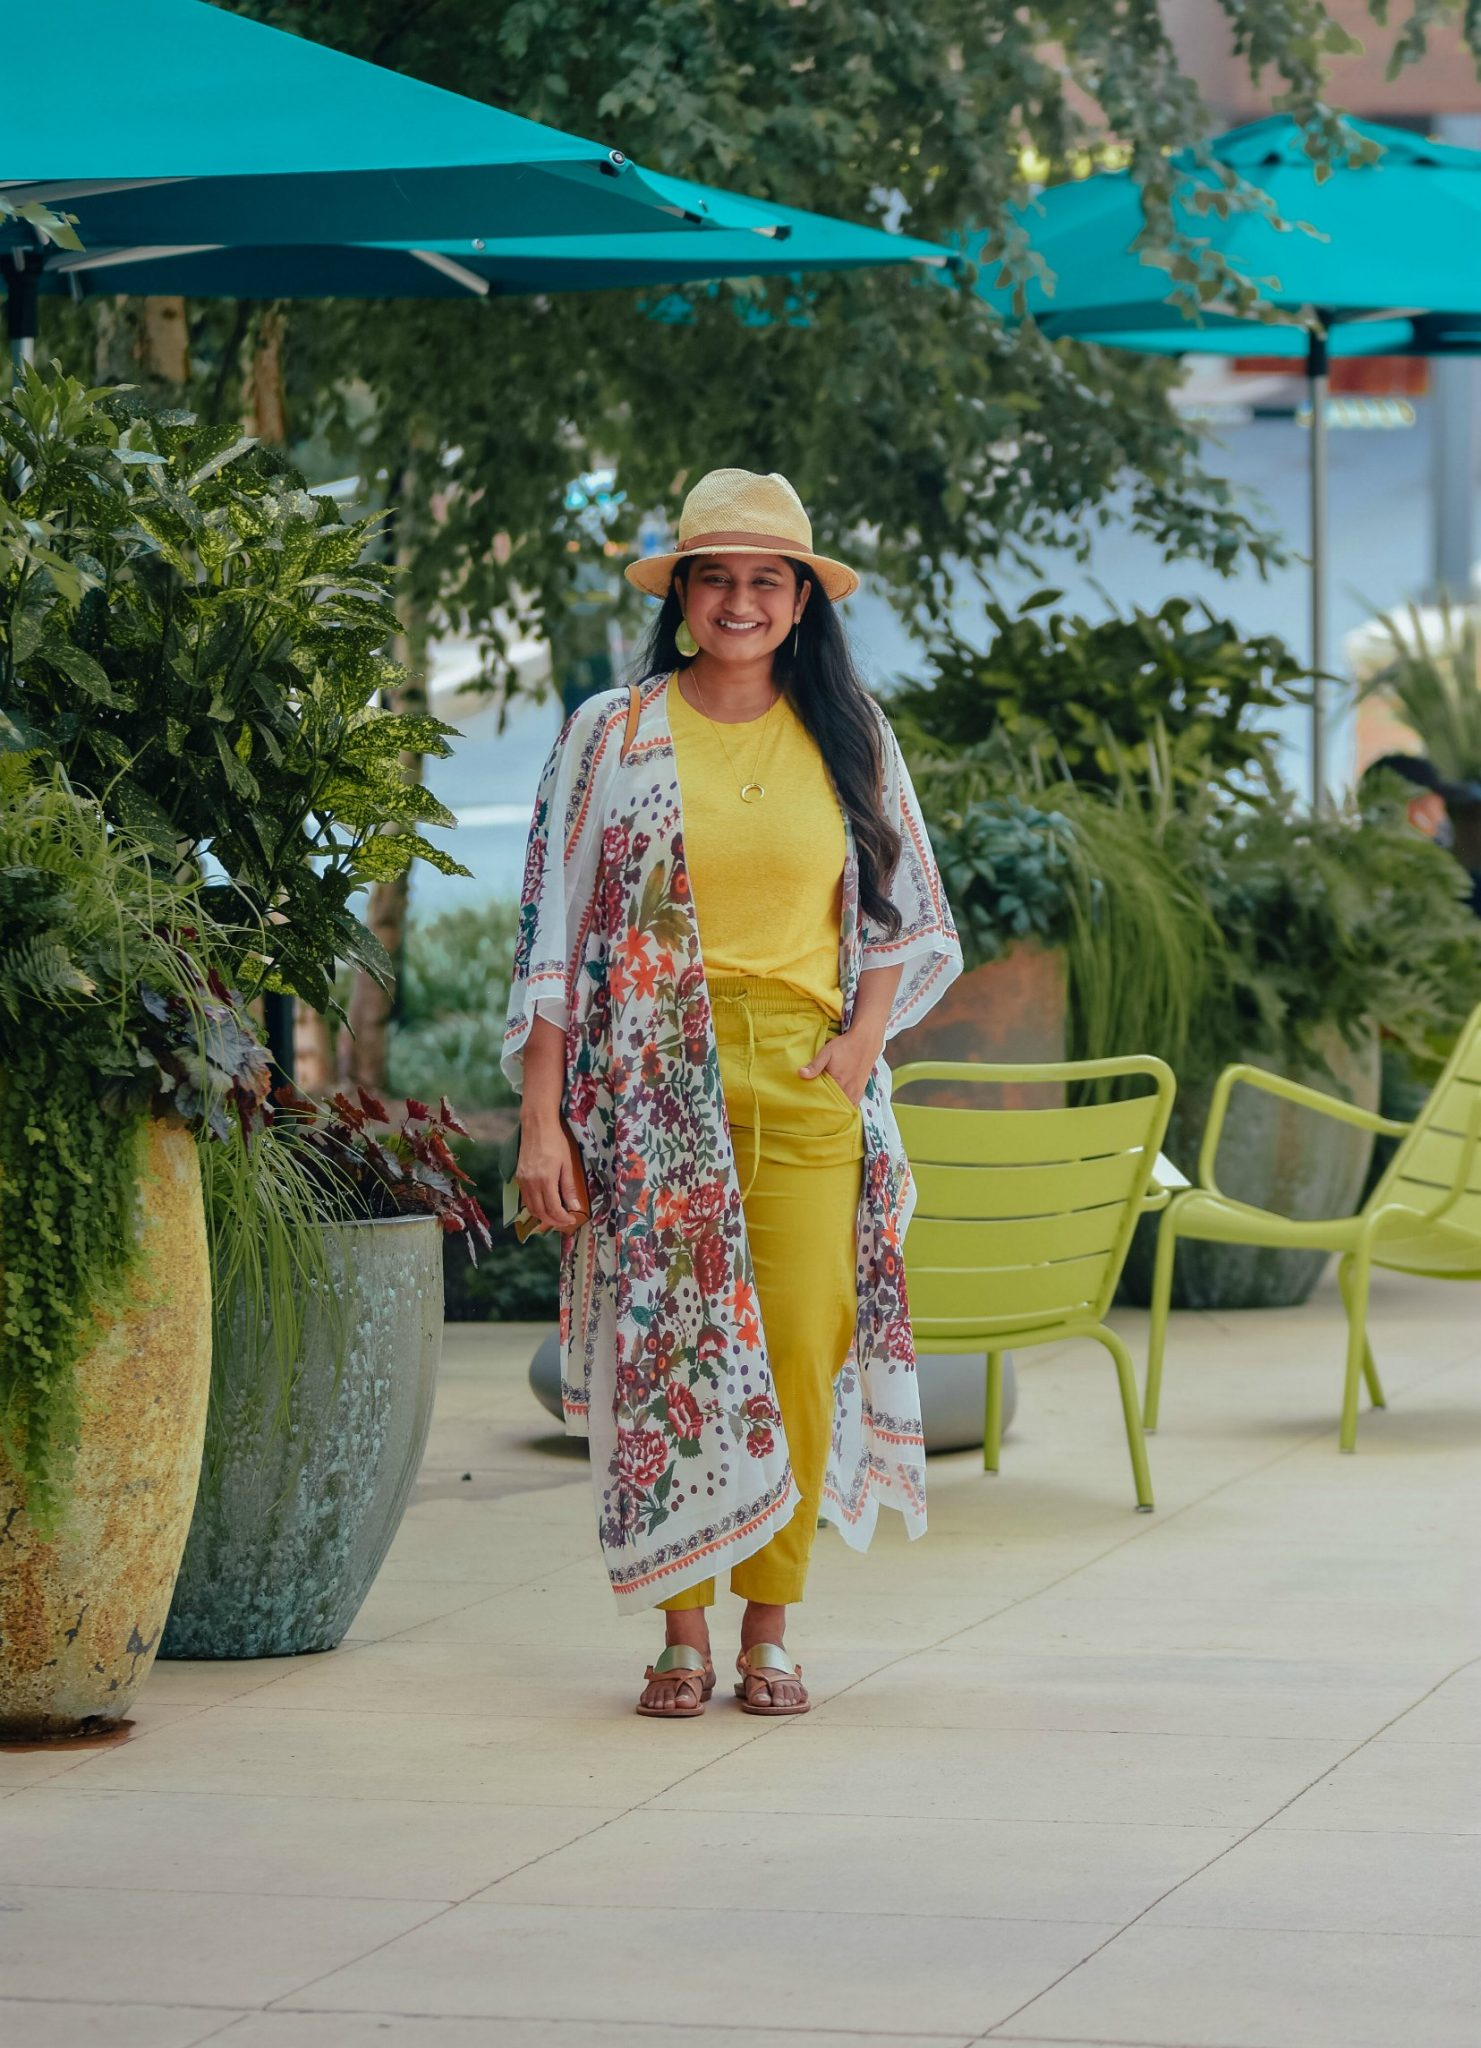 Wearing Hibluco Chiffon Floral Kimono, Madewell Whisper Cotton tee, Lou and Grey Cosmic Jogger, Soludos Metallic sandals | Floral Kimono by popular Maryland fashion blog, Dreaming Loud: image of a woman walking outside by some shade umbrellas, yellow chairs, and potted plants and wearing a Amazon Hibluco Women's Sheer Chiffon Floral Kimono, Madewell Whisper Cotton Rib-Crewneck Tee, Lou & Grey Cosmic Joggers, Amazon Soludos Women's Slotted Thong Sandals, Gorjana necklace and Shopbop Botkier Cobble Hill Crossbody Bag.